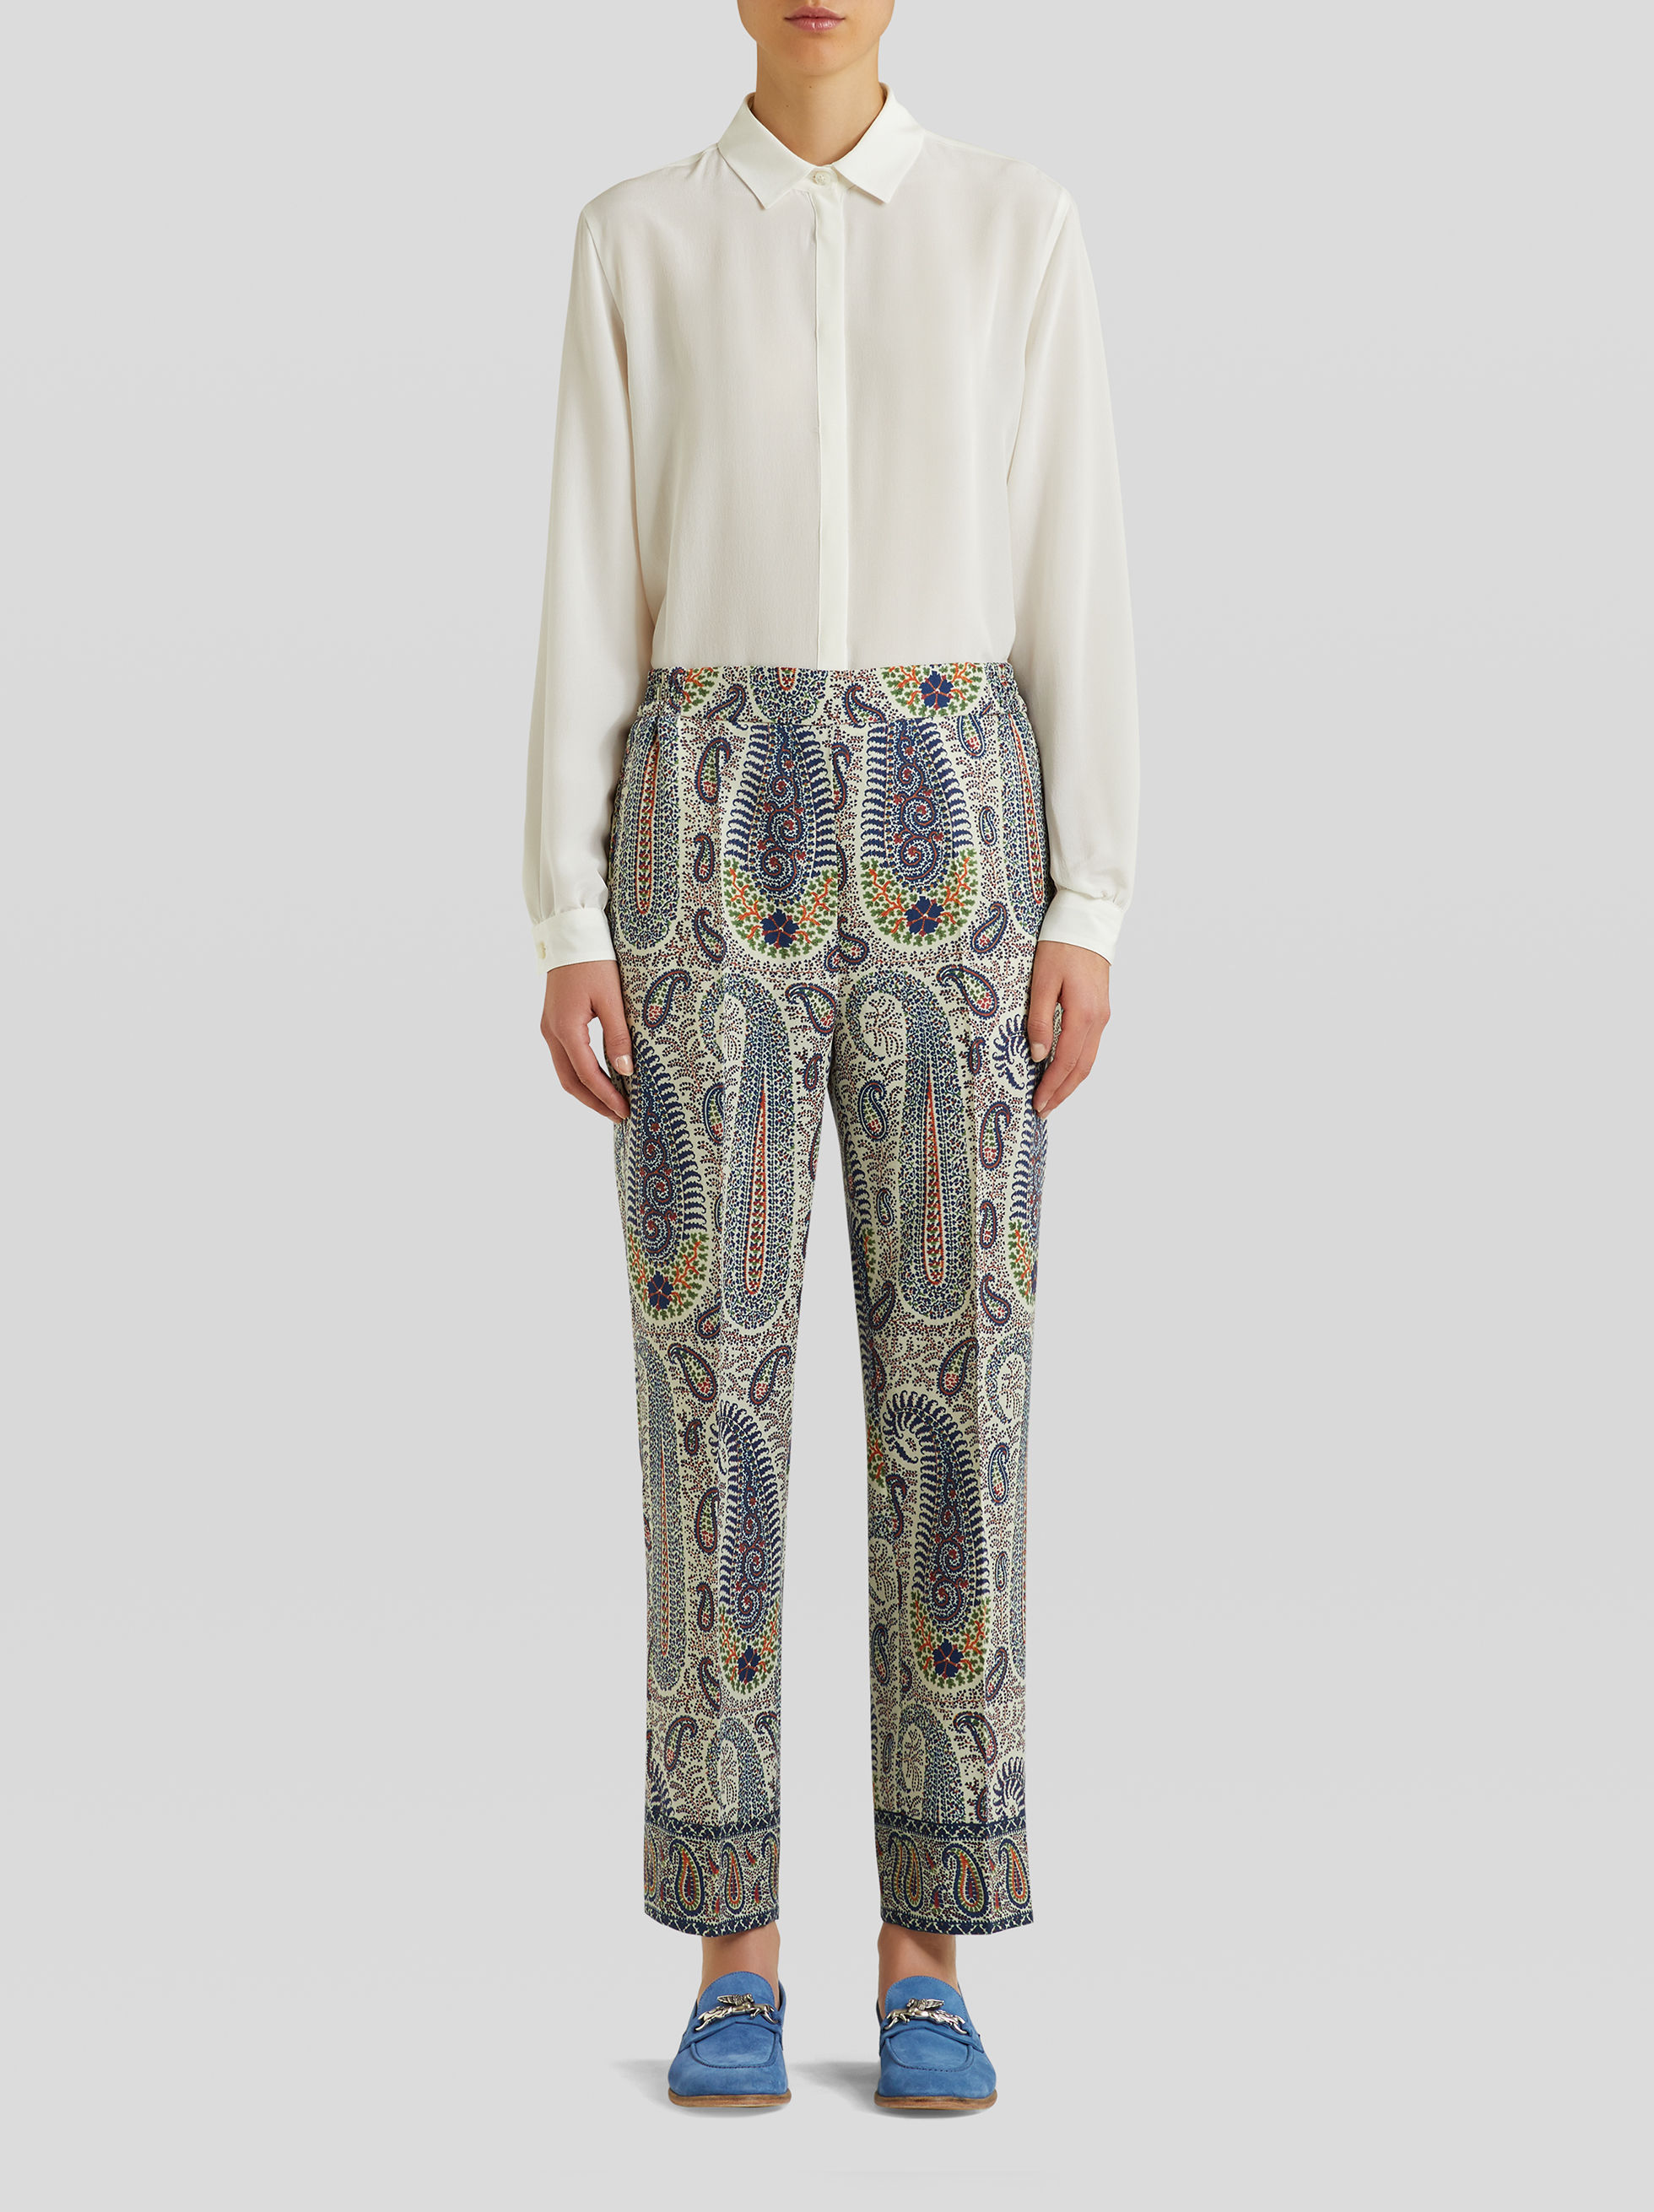 Etro Clothing WOOL AND SILK JOGGING TROUSERS